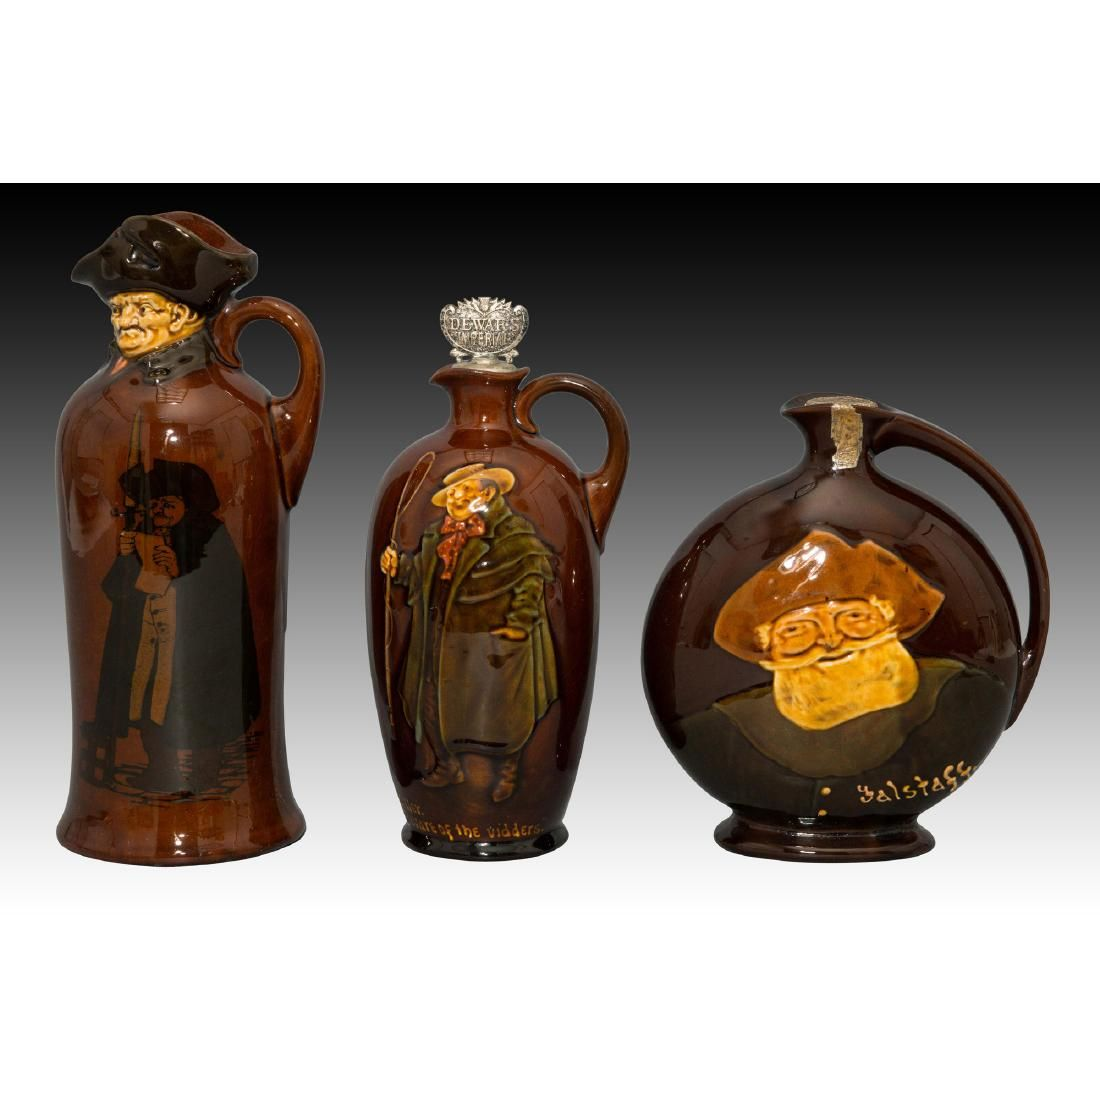 Royal Doulton Kingsware Dewars Whiskey Jugs